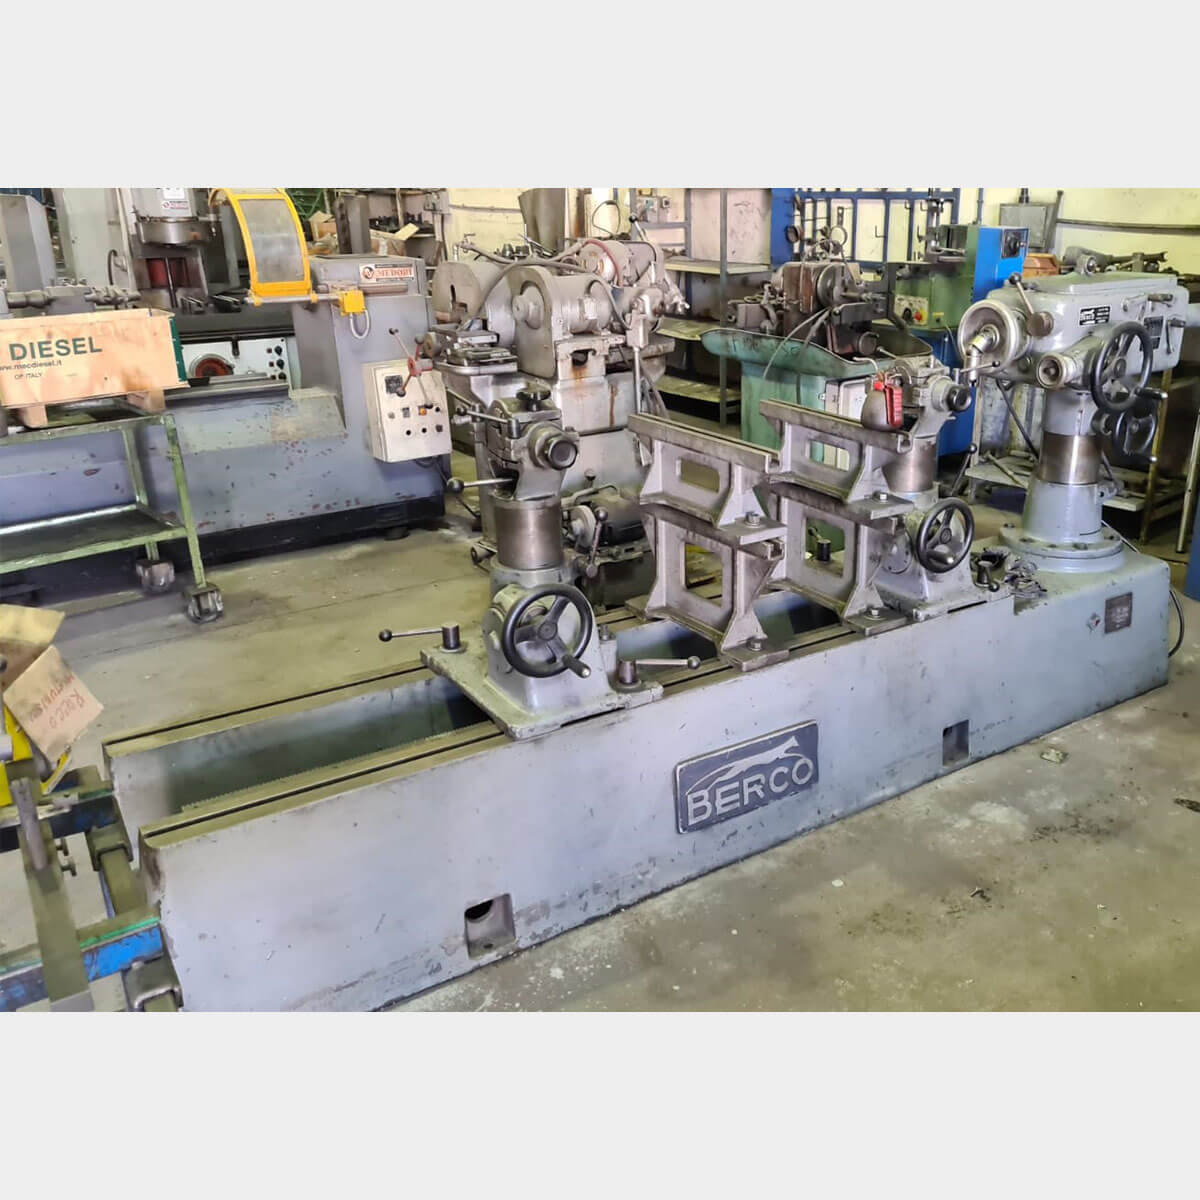 MU666 - BERCO BC4 Used Horizontal Boring Machine